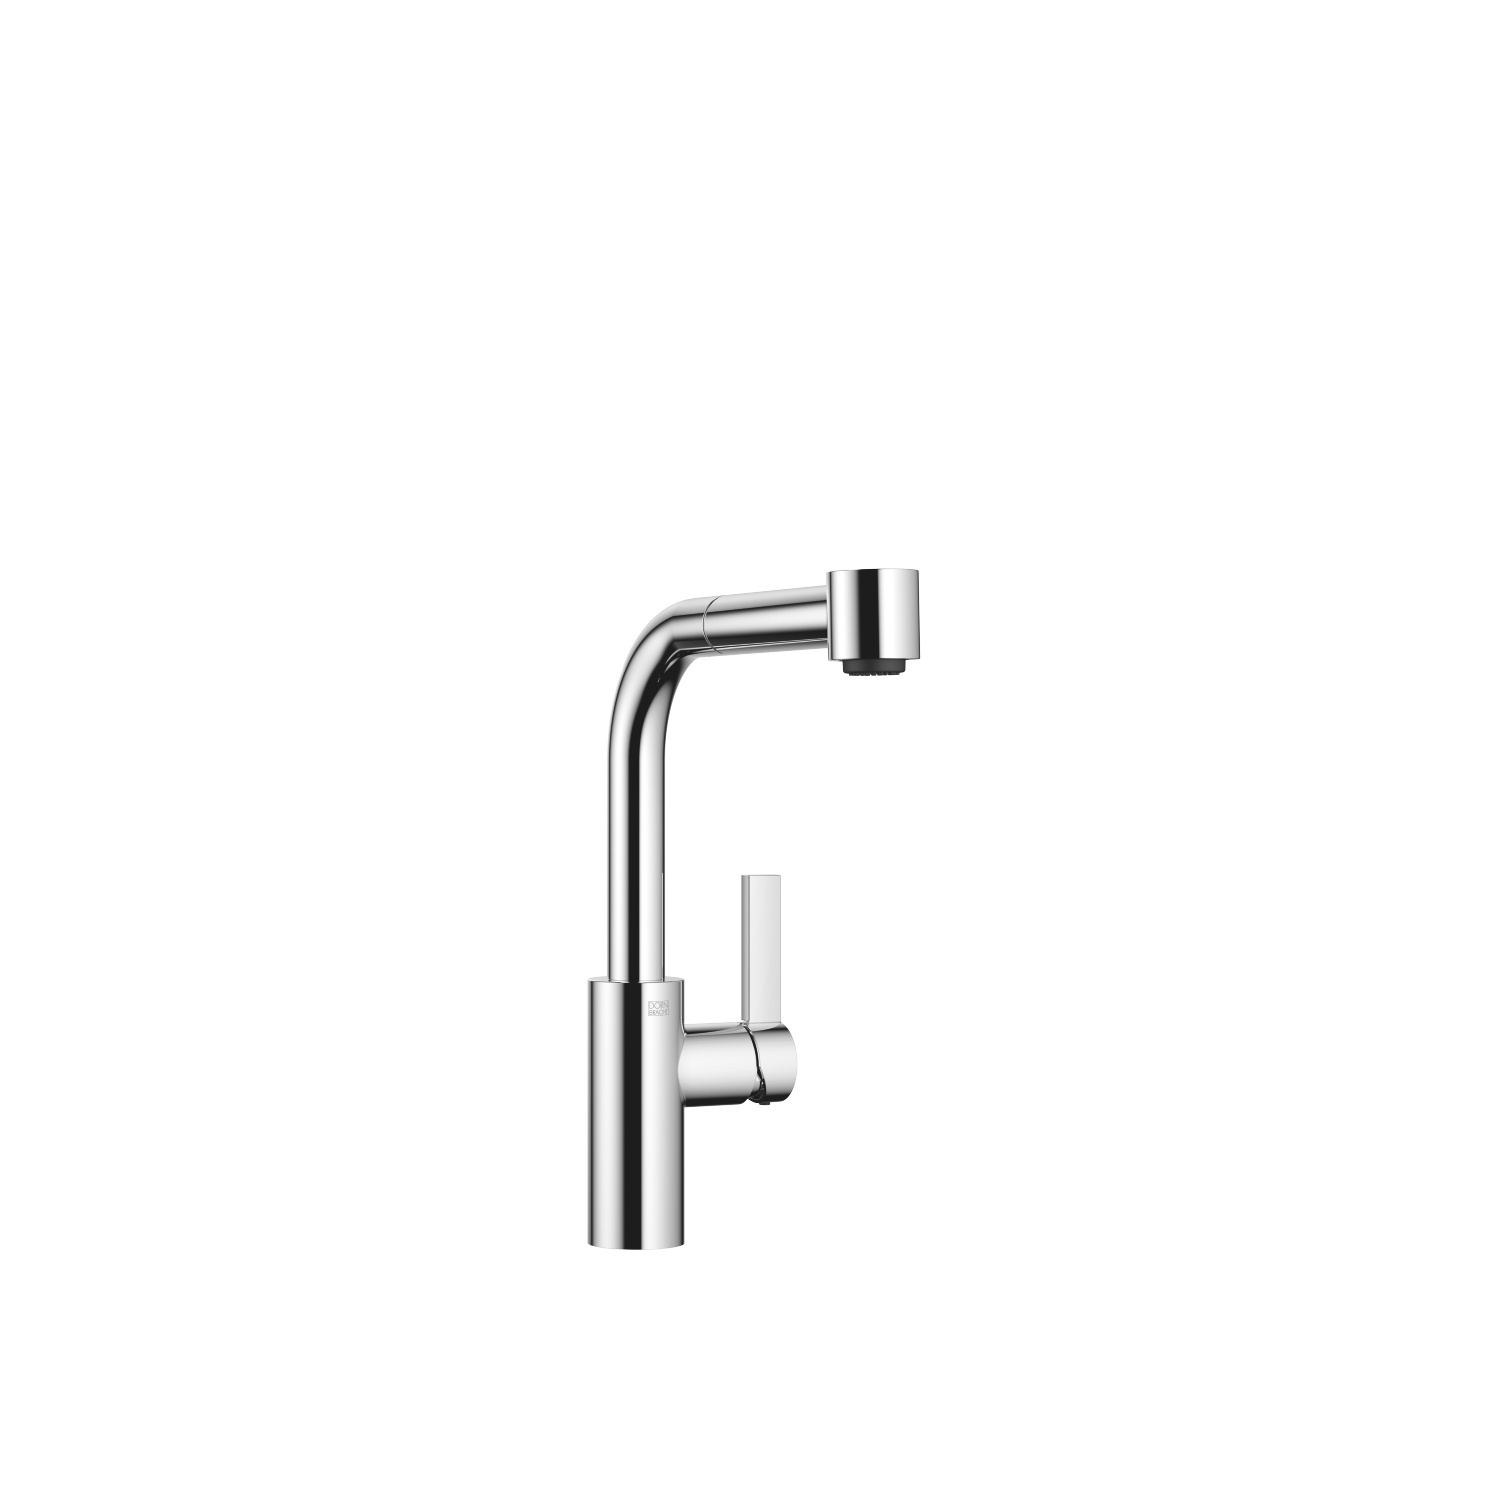 Single-lever mixer with pull-out spout with spray function - polished chrome